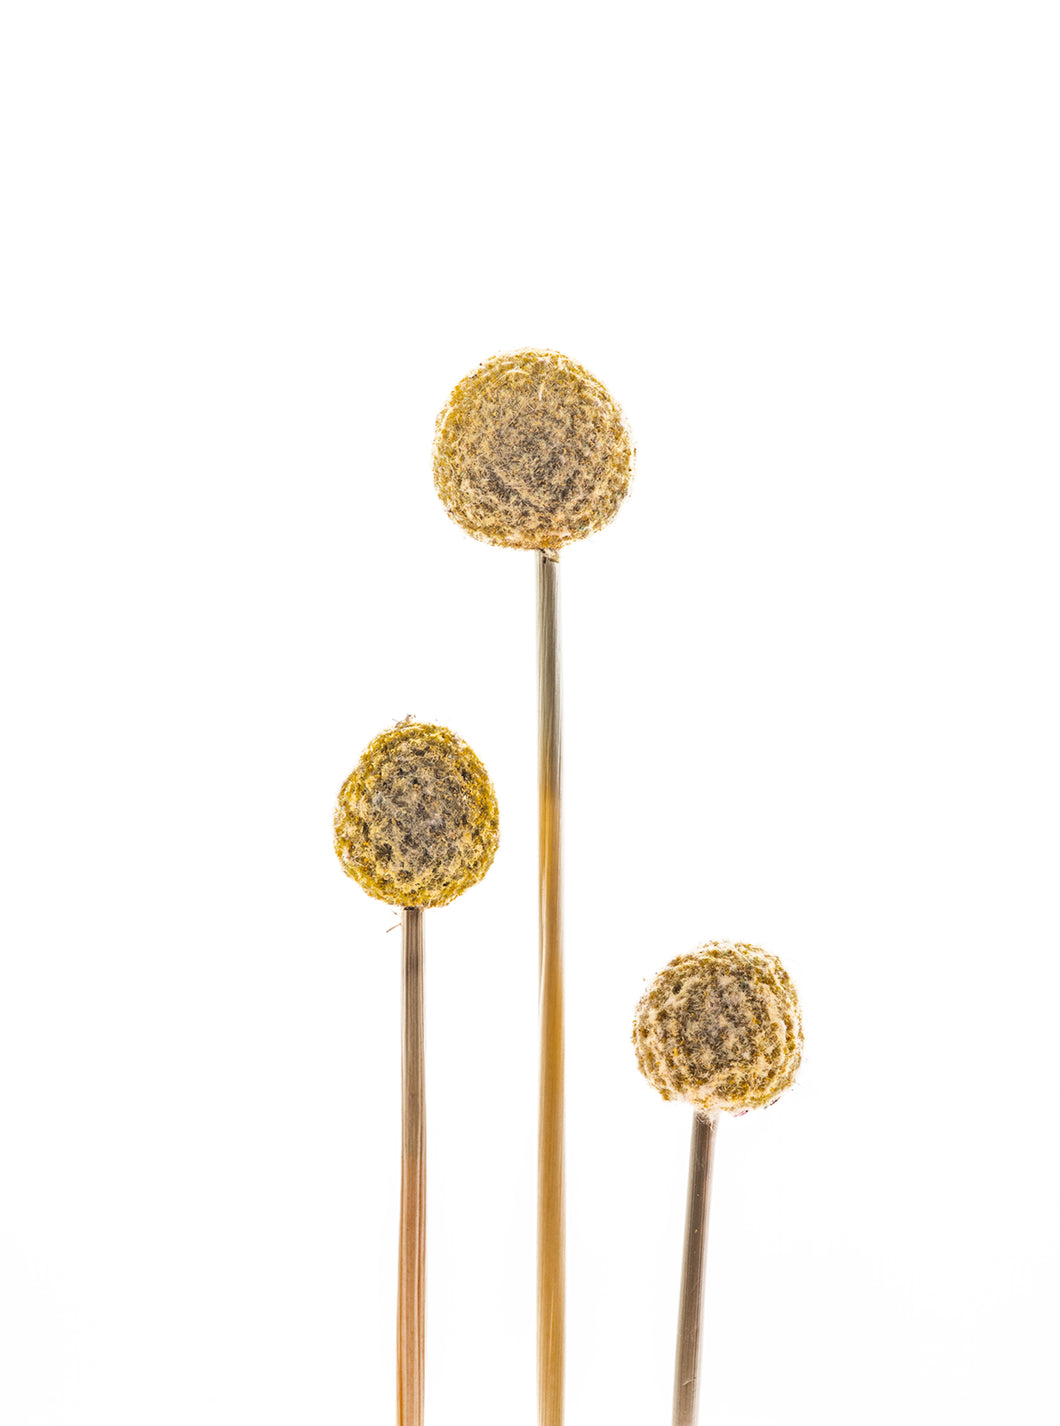 Billy Buttons (Fine Art Photography)